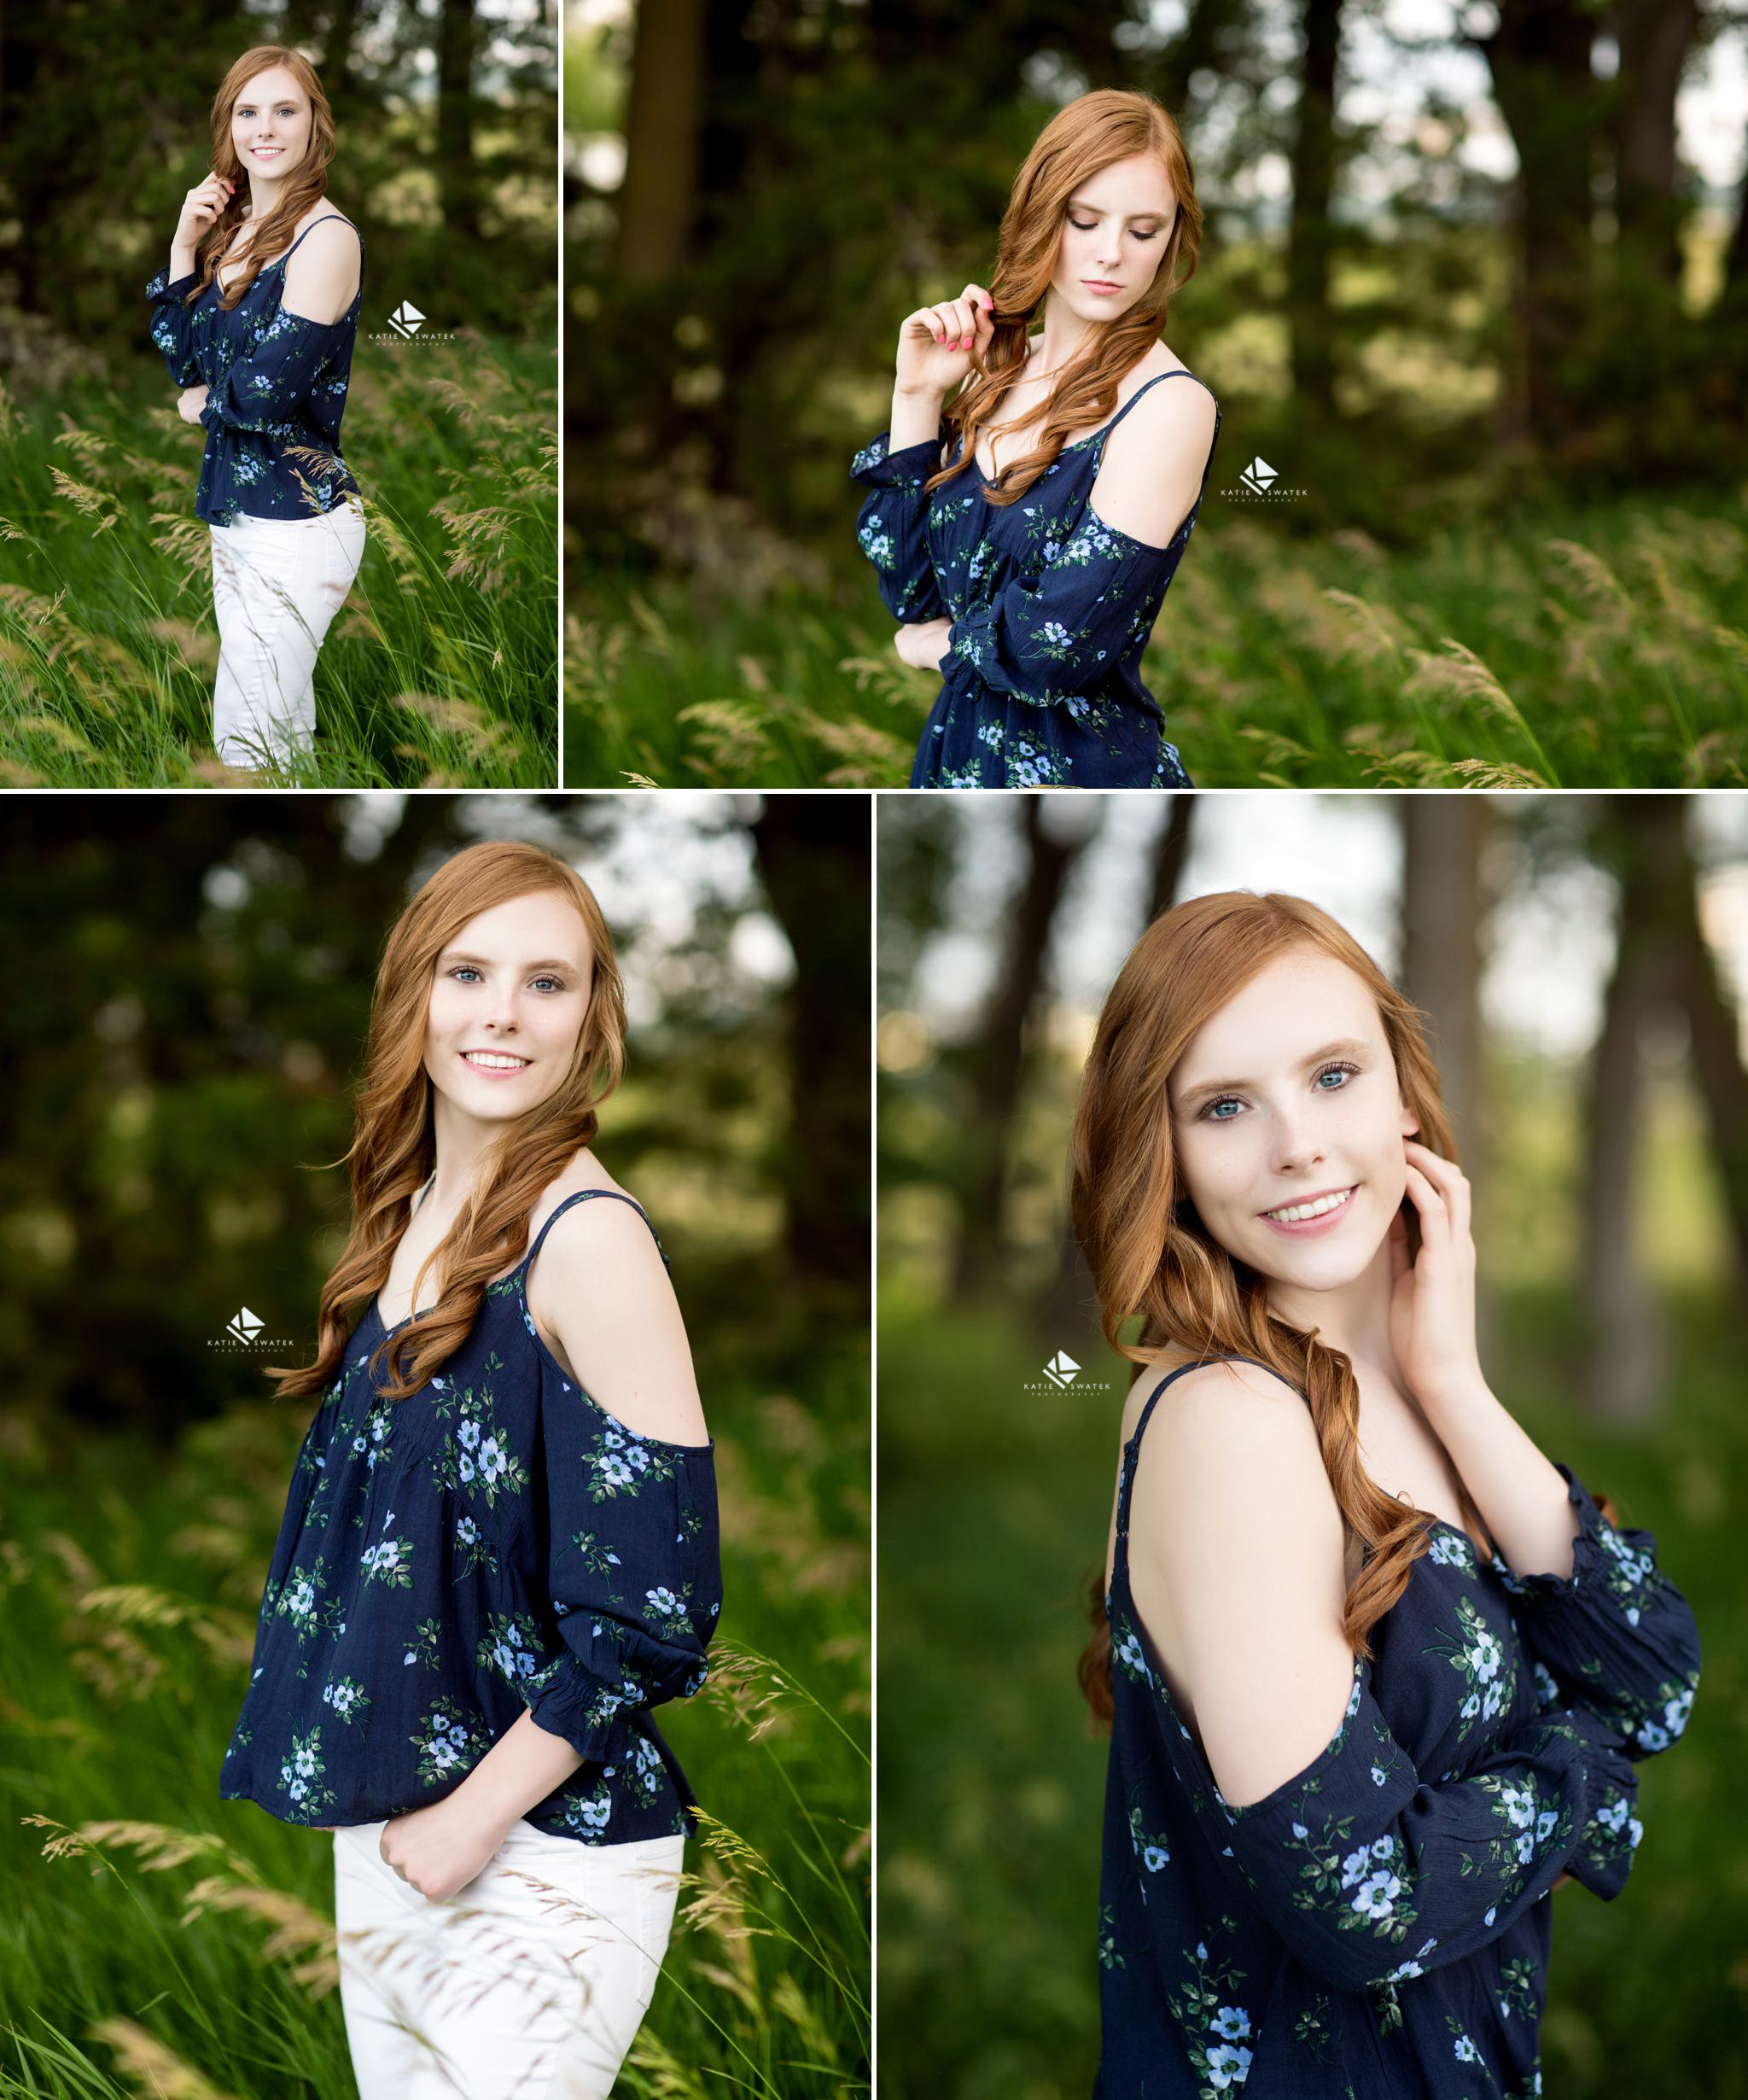 Red headed senior in a navy blue floral top and white pants standing in a grassy, tree covered area for senior pictures